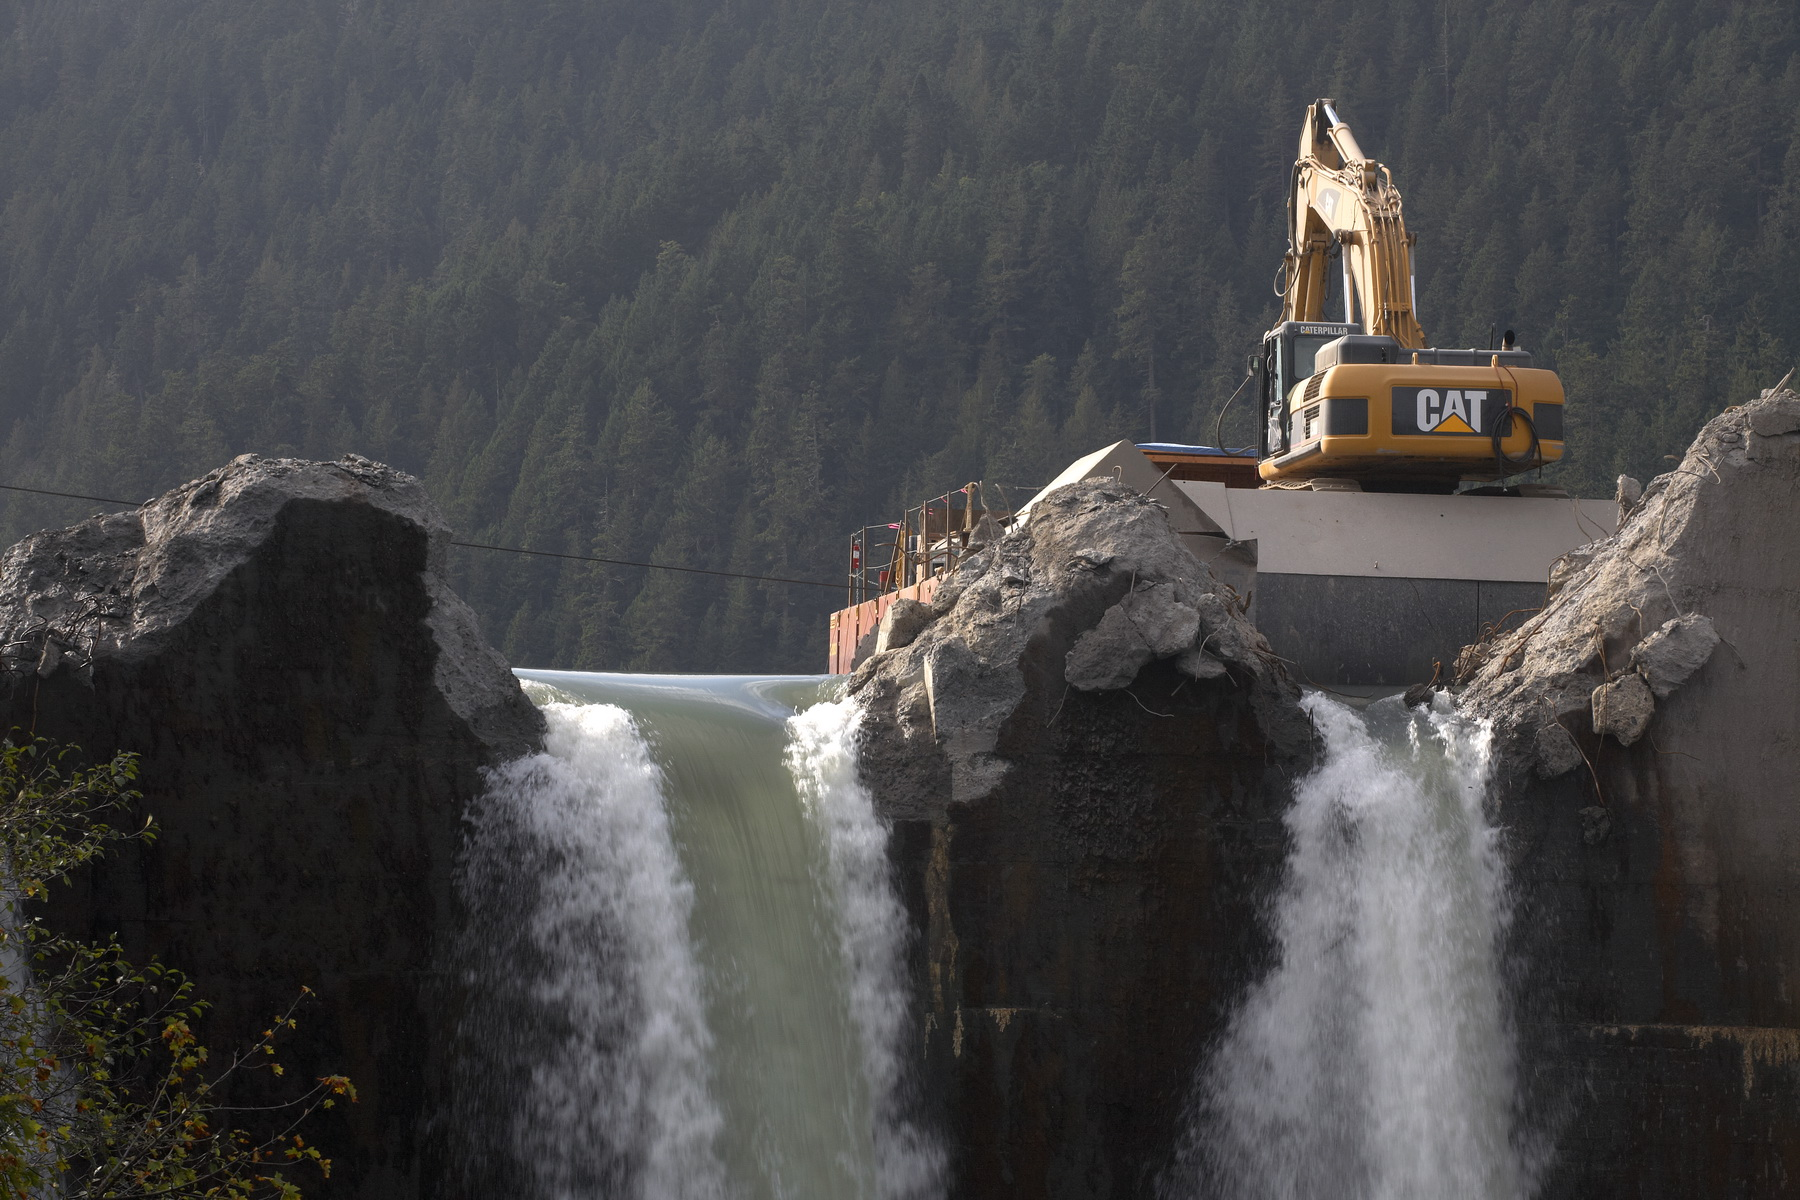 BEGINNING WORK ON REMOVAL AT GLINES DAM